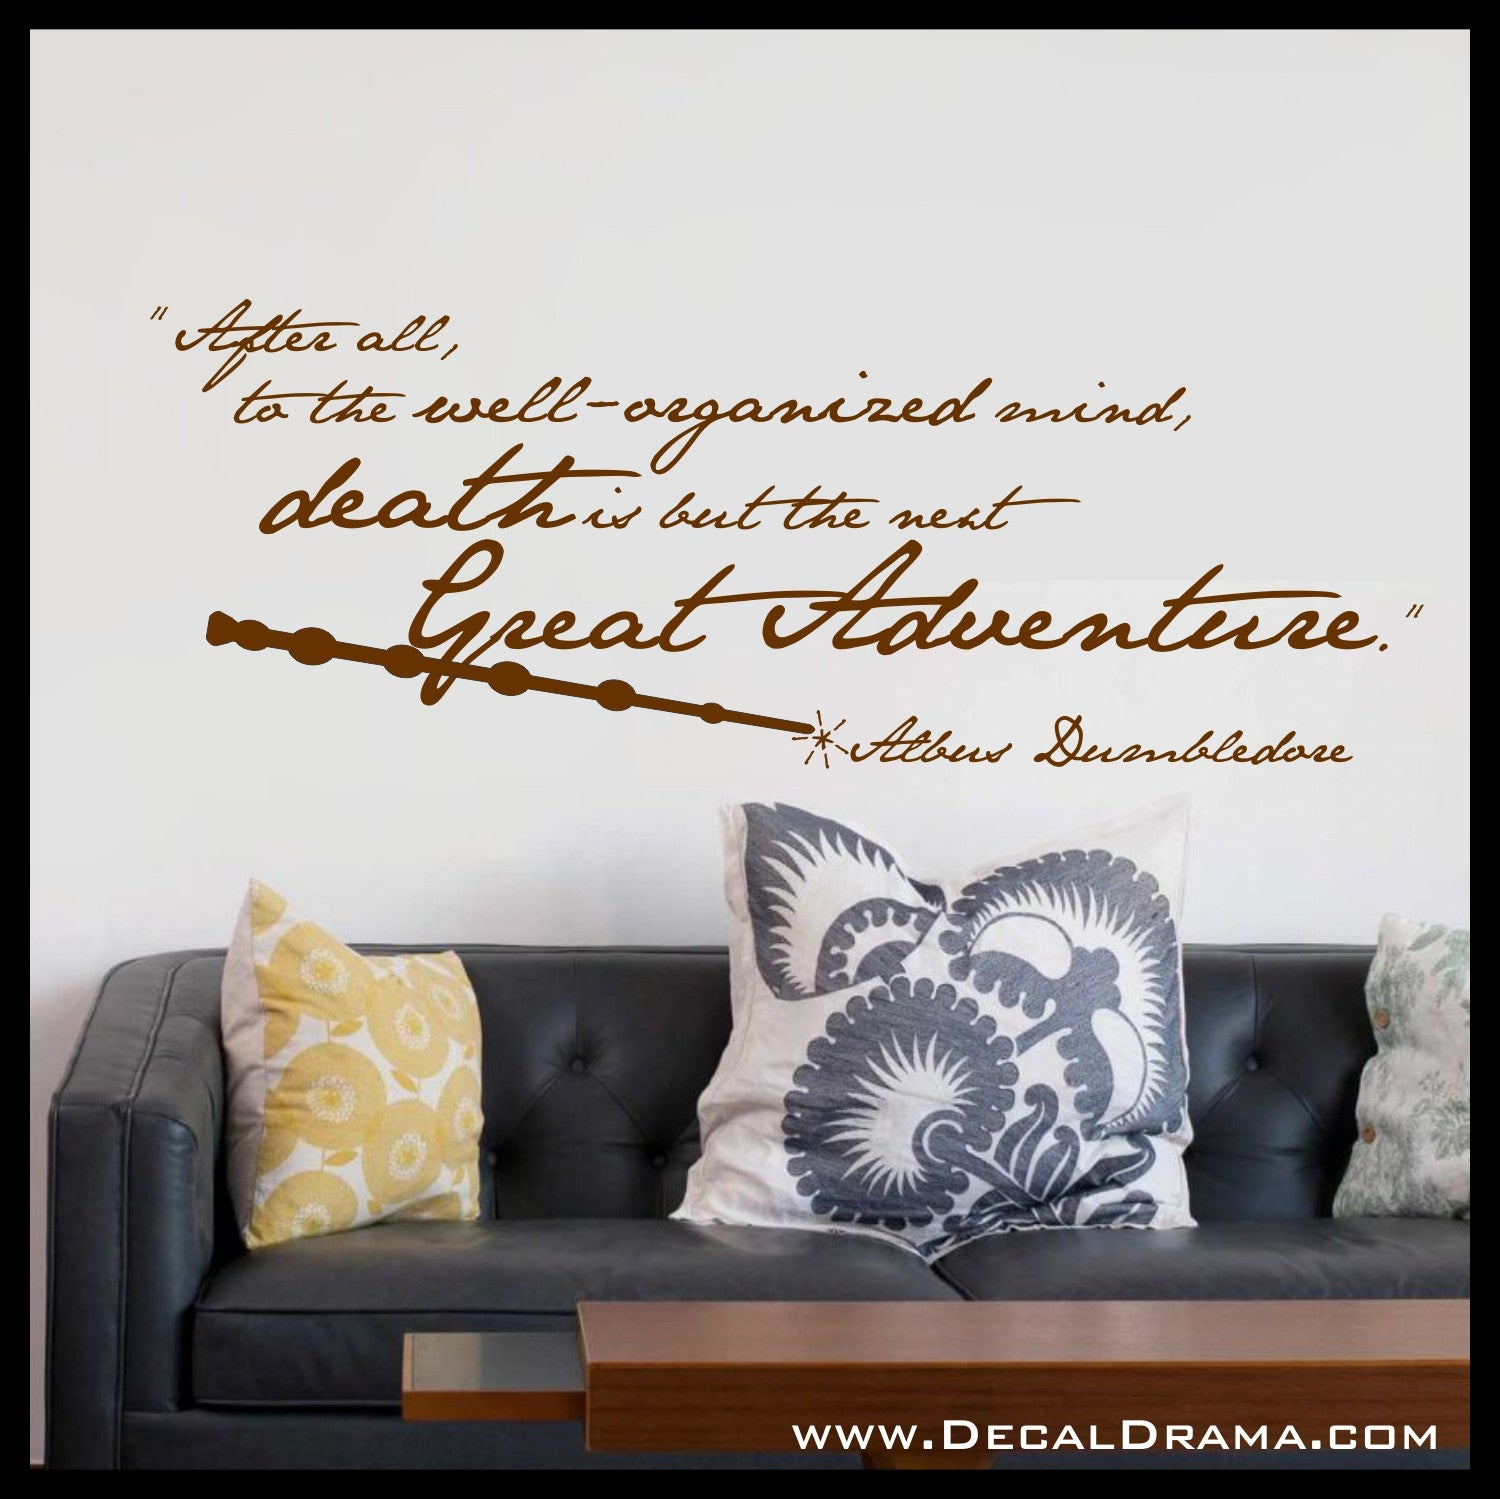 After All to the well-organized mind DEATH is but the Next GREAT ADVENTURE, Albus Dumbledore, Harry-Potter-Inspired Fan Art Vinyl Wall Decal